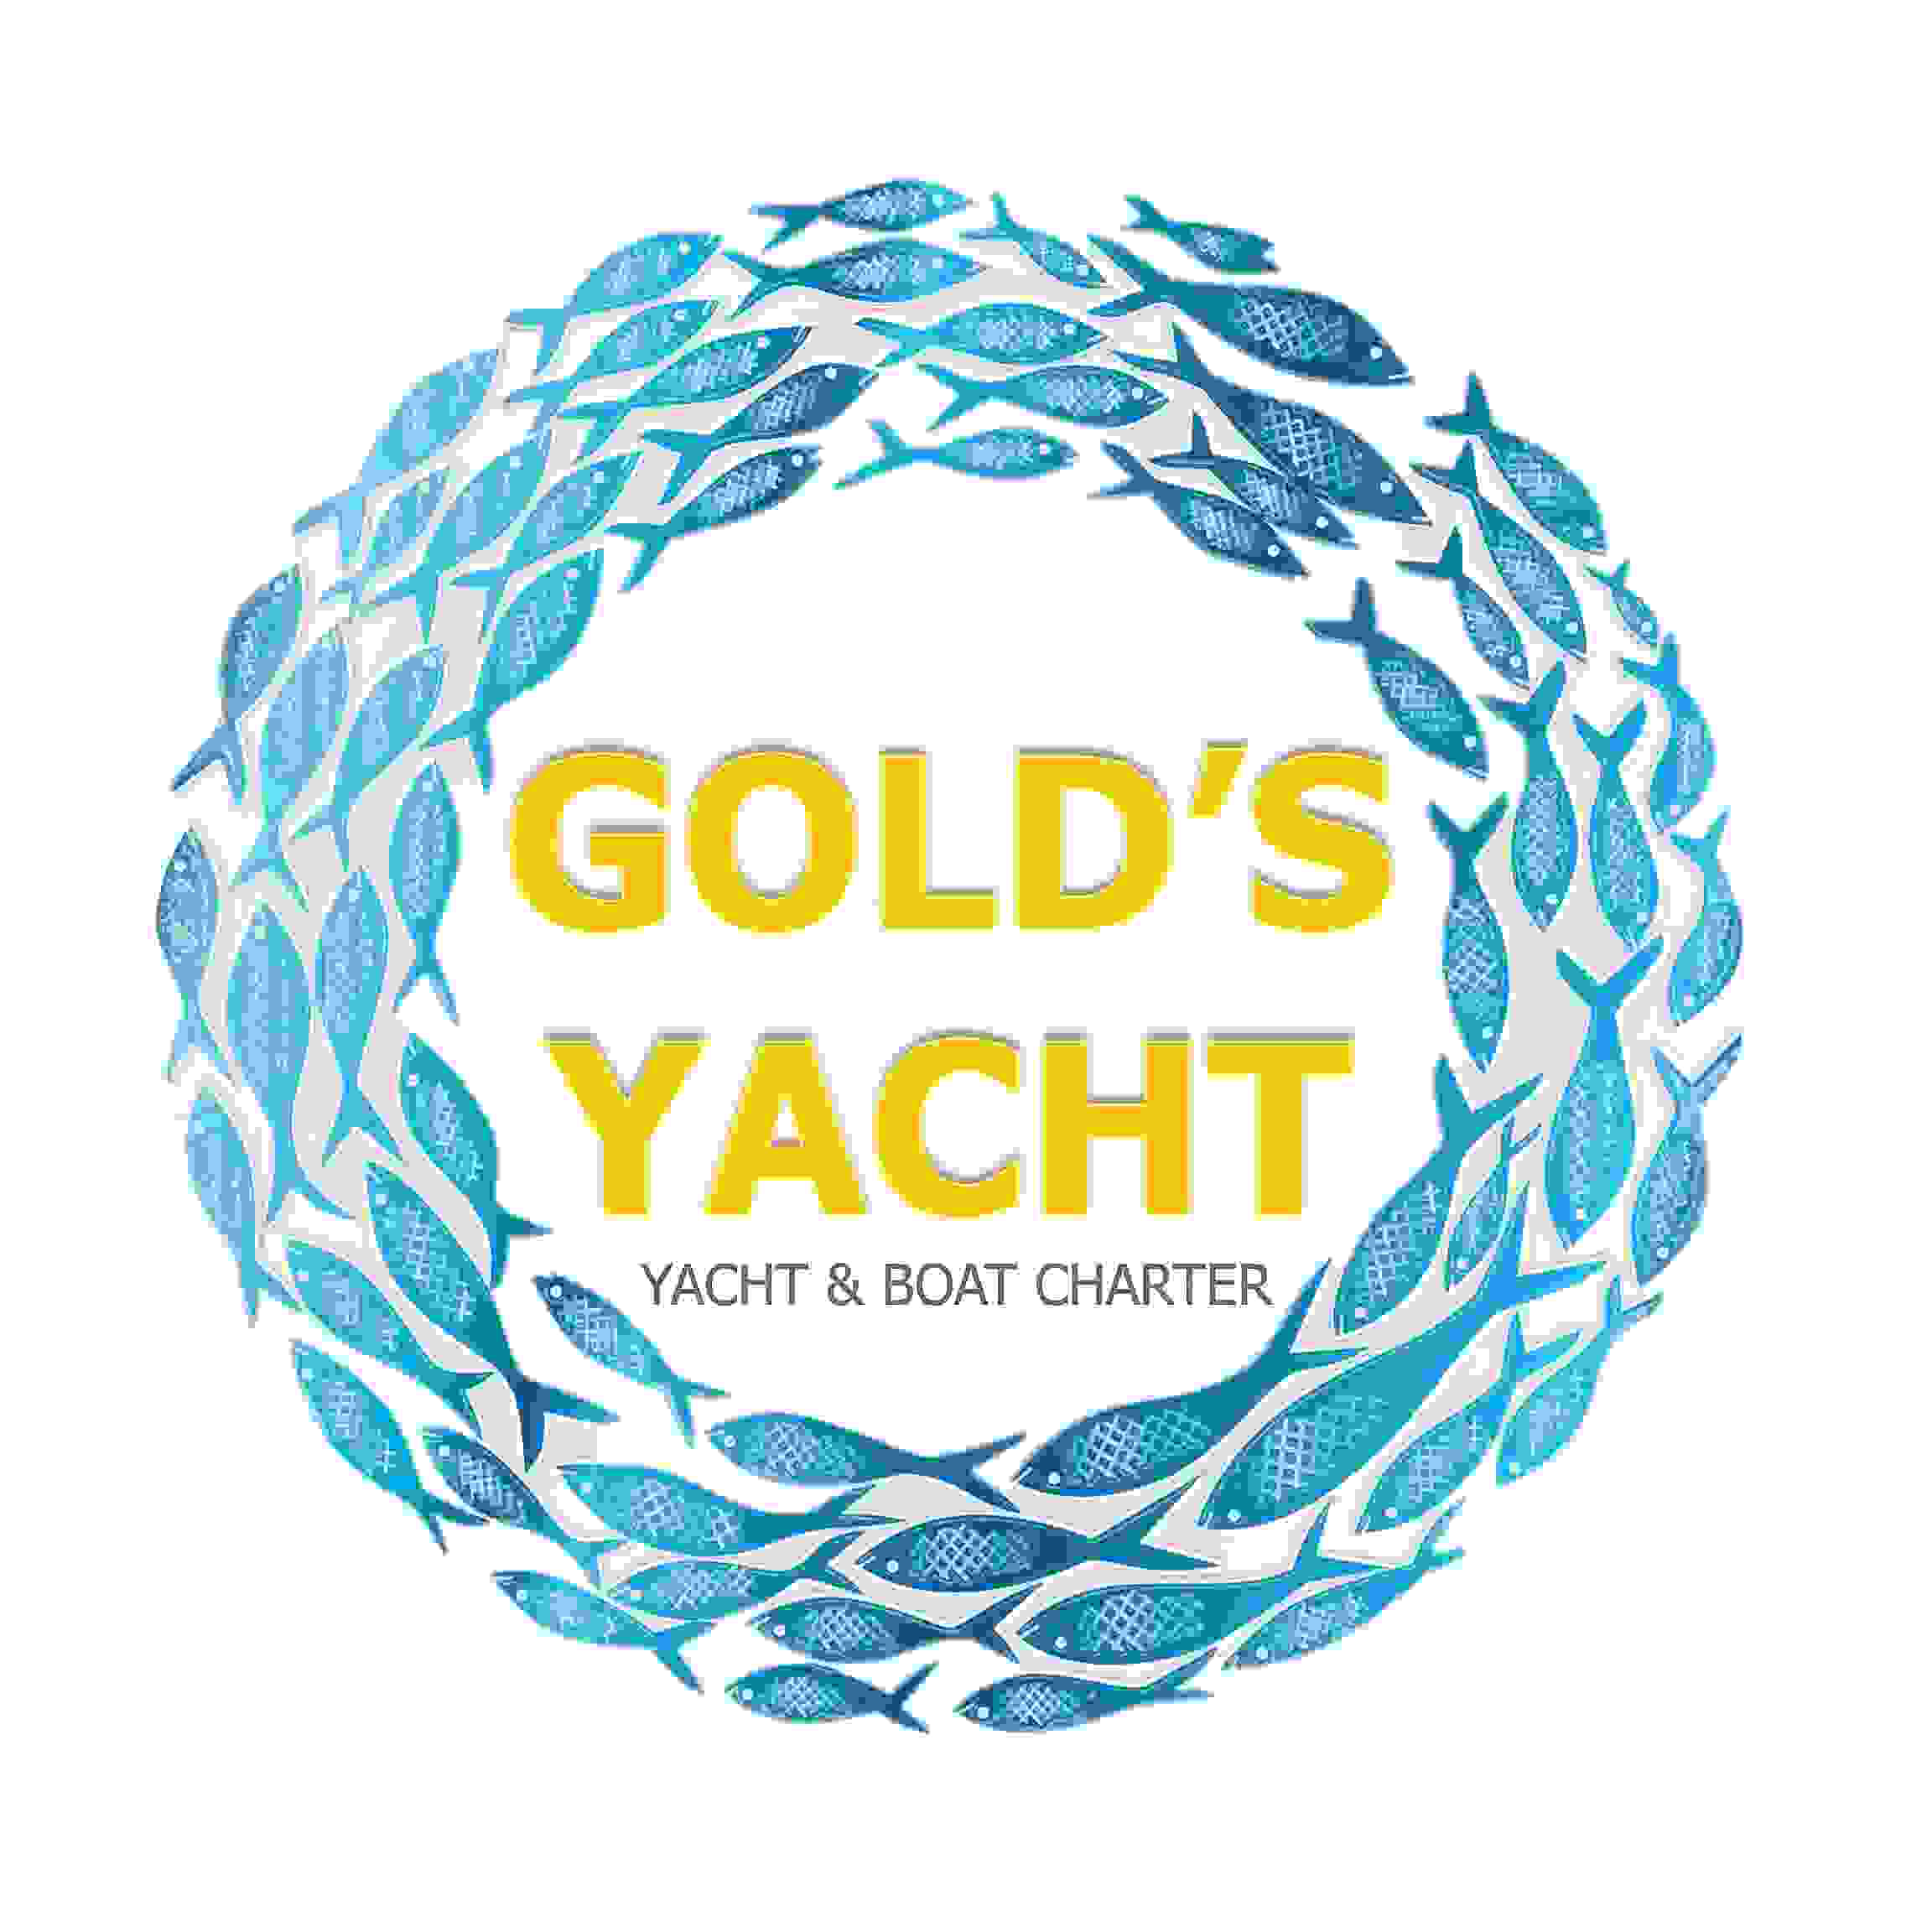 Gold's Yacht Reviews | Read Customer Service Reviews of